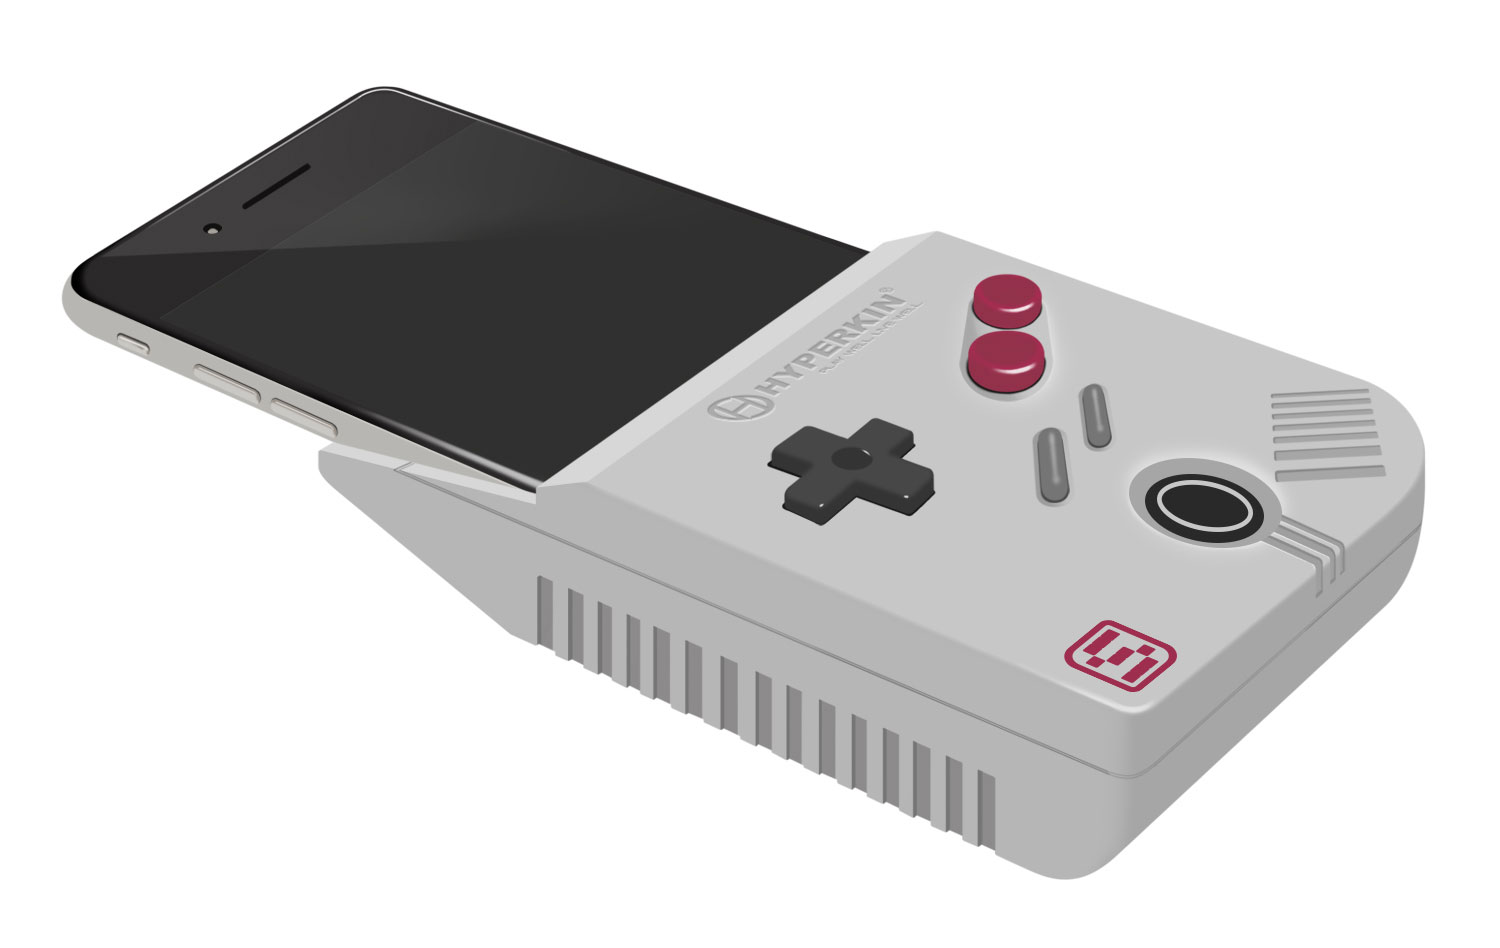 Smart Boy might turn your iPhone into a Game Boy, thanks to an April Fools' test